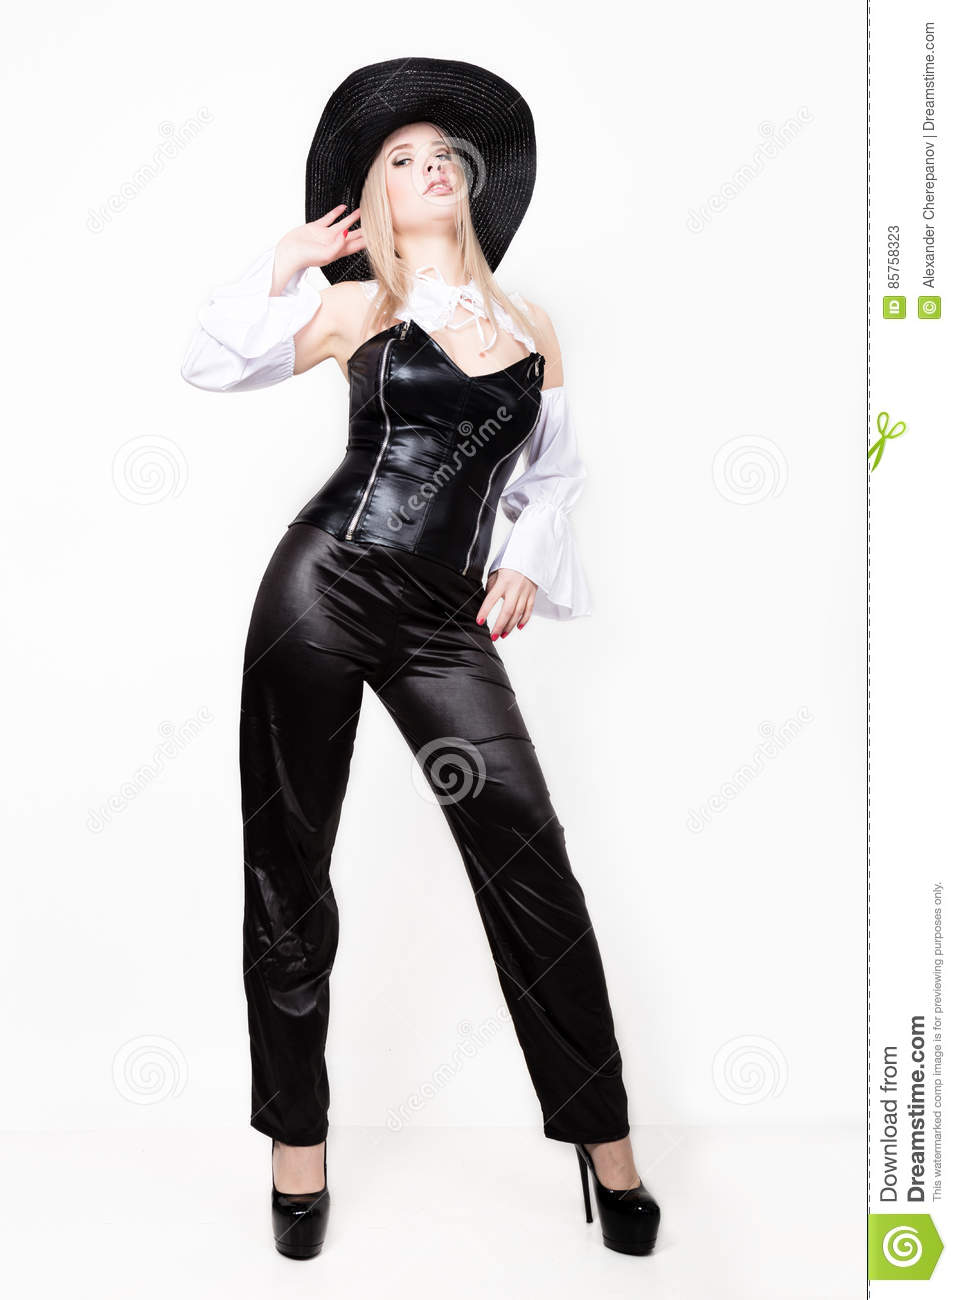 Woman With Hourglass Figure Dressed In Black Leather Corset